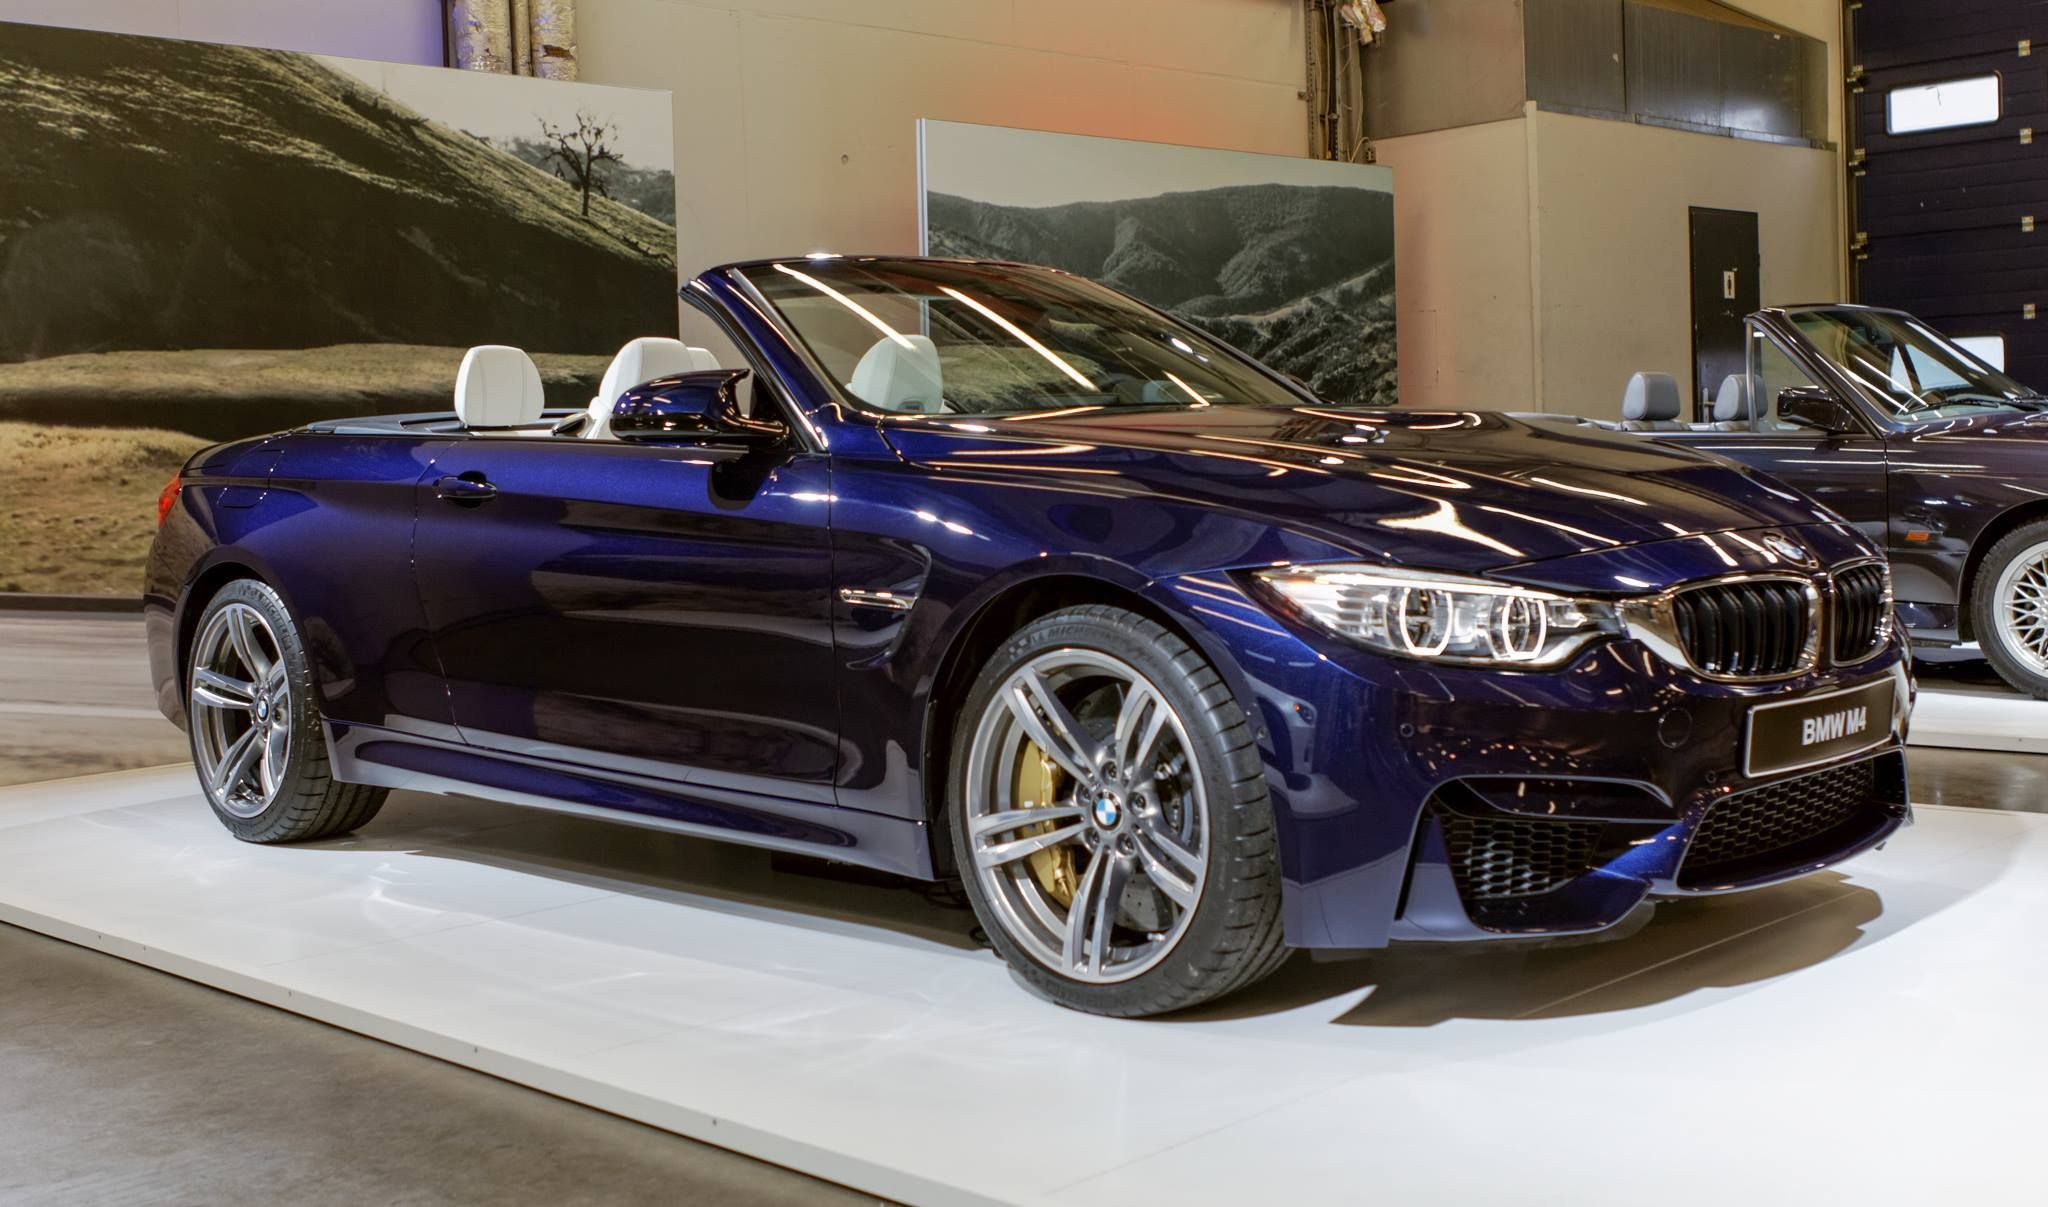 The Fantastic New Bmw M4 Convertible Finished In Individual Tanzanite Blue Metallic Paintwork Www Knightsbmw Com Bmw New Bmw Bmw M4